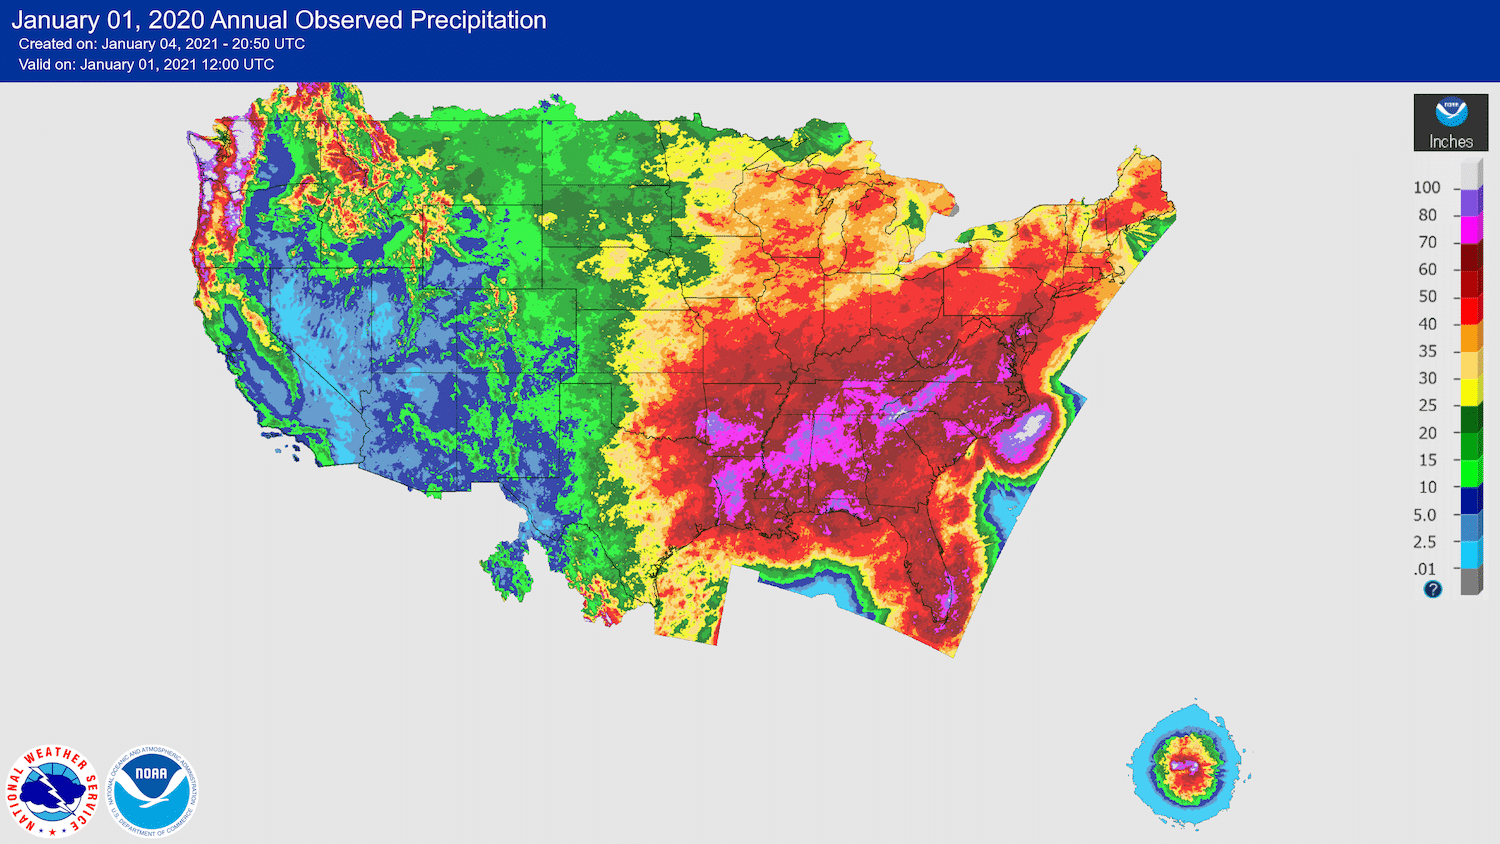 2020 Becomes Second All-Time Wettest Year Locally